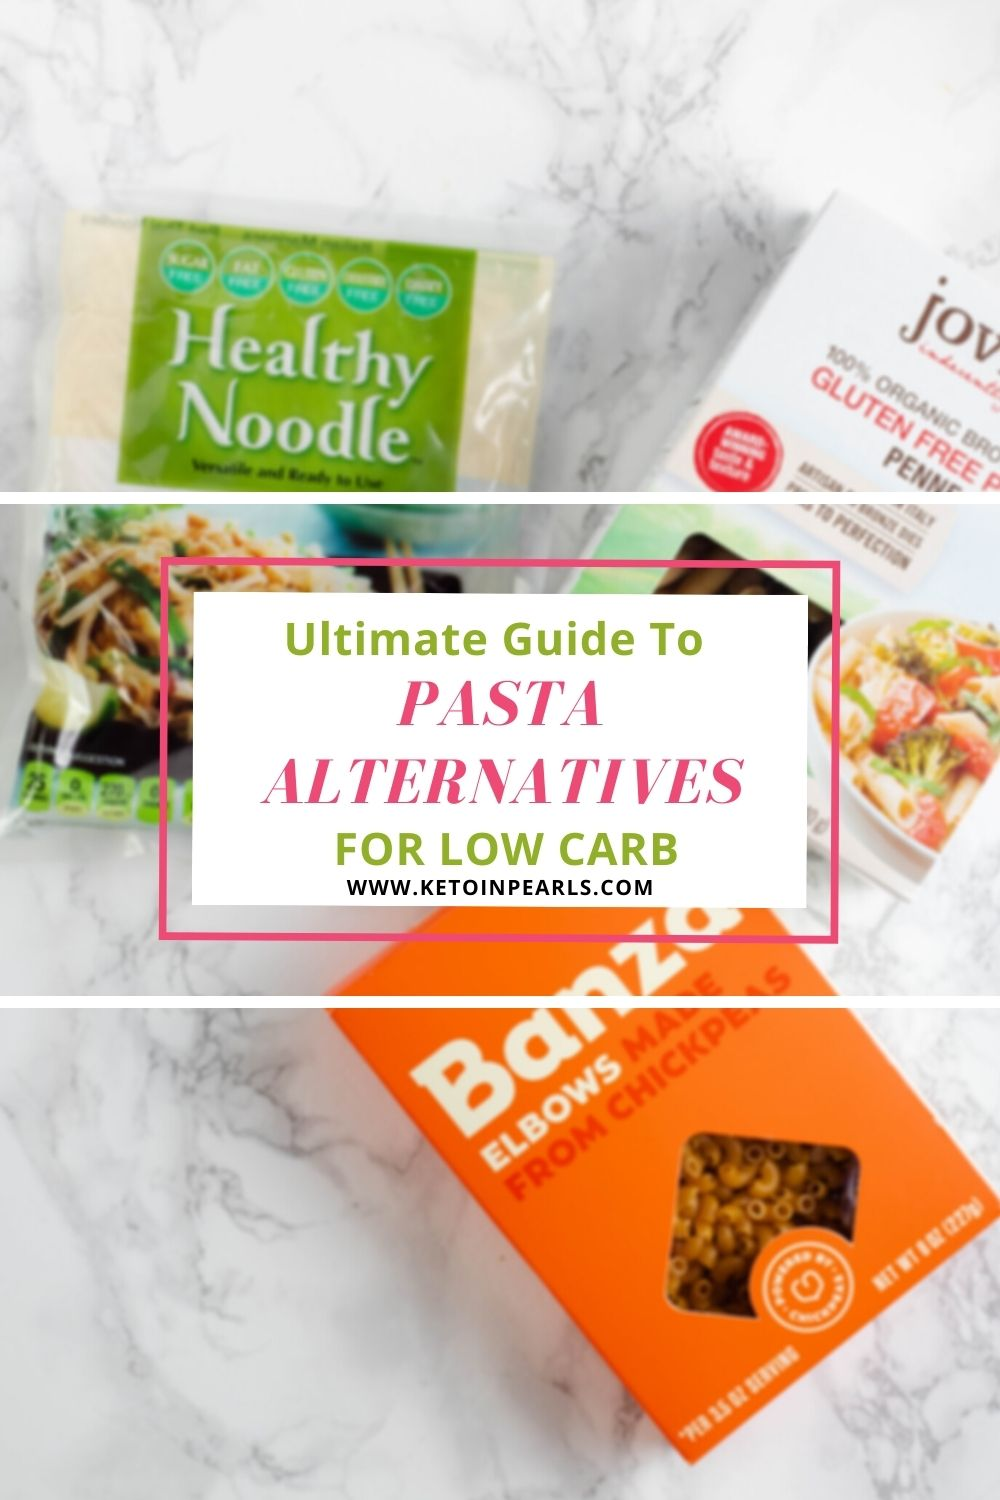 This guide will show you some of the most popular pasta alternatives for low carb noodles, keto noodles, and gluten free noodles as well as highlight 14 recipes using them!